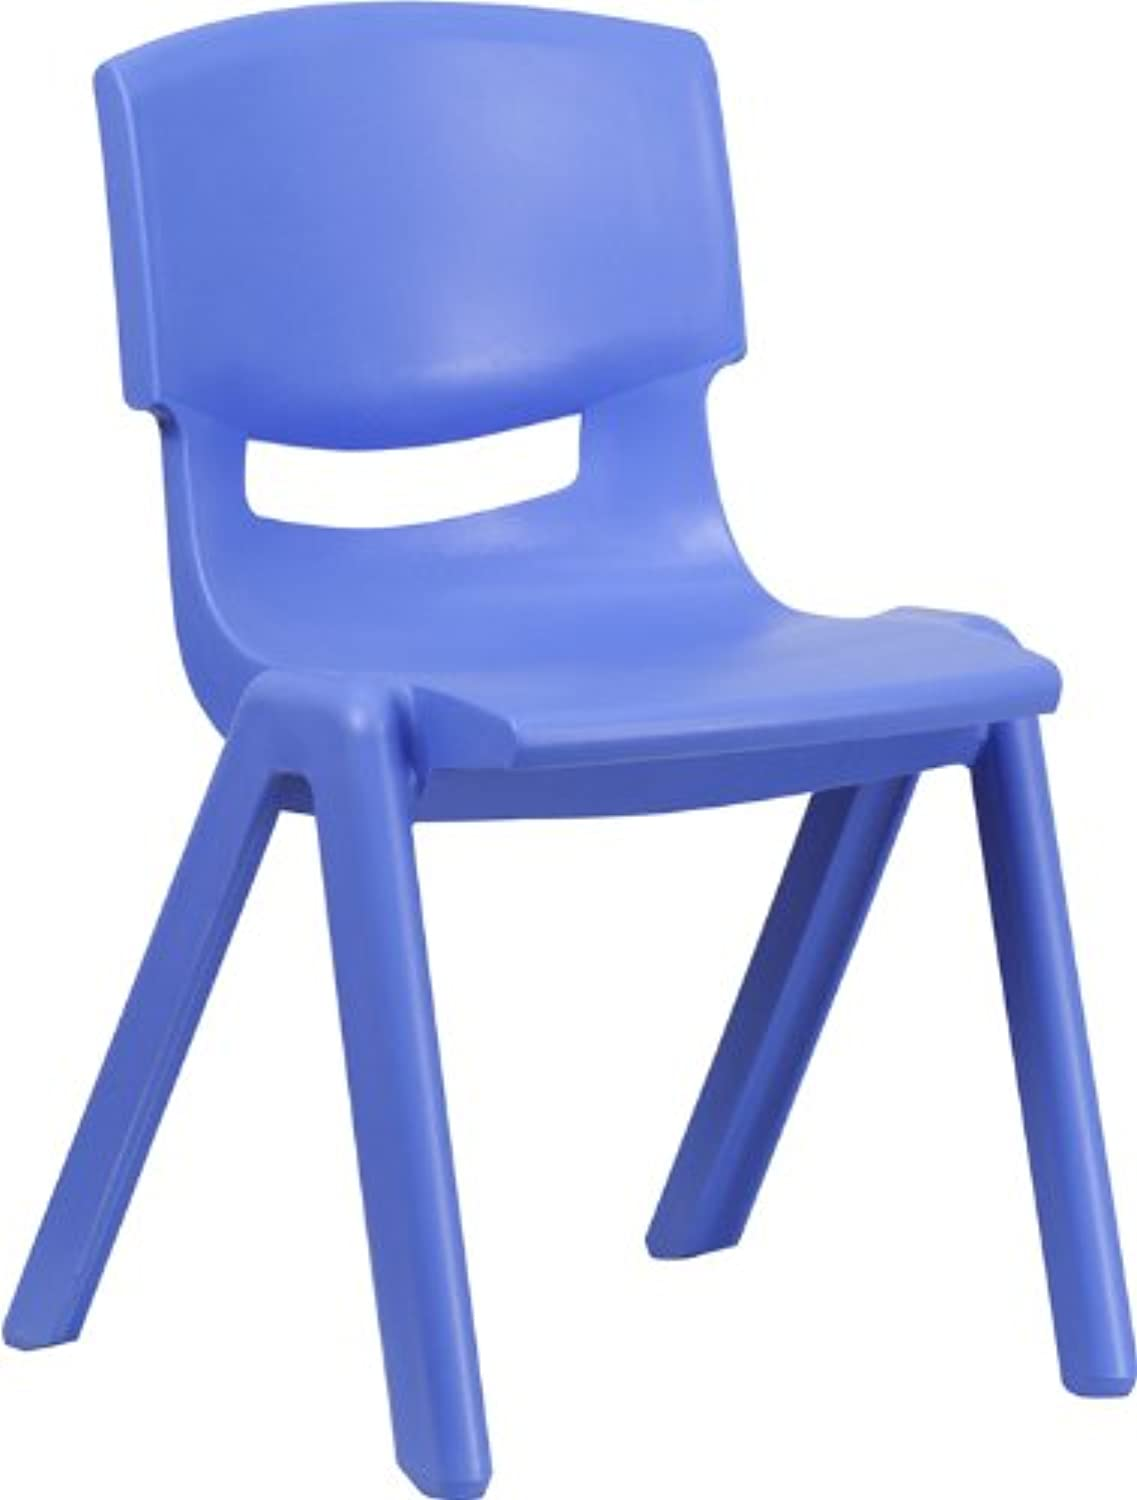 Offex OF-YU-YCX-005-blueE-GG bluee Plastic Stackable School Chair, 15.5-Inch